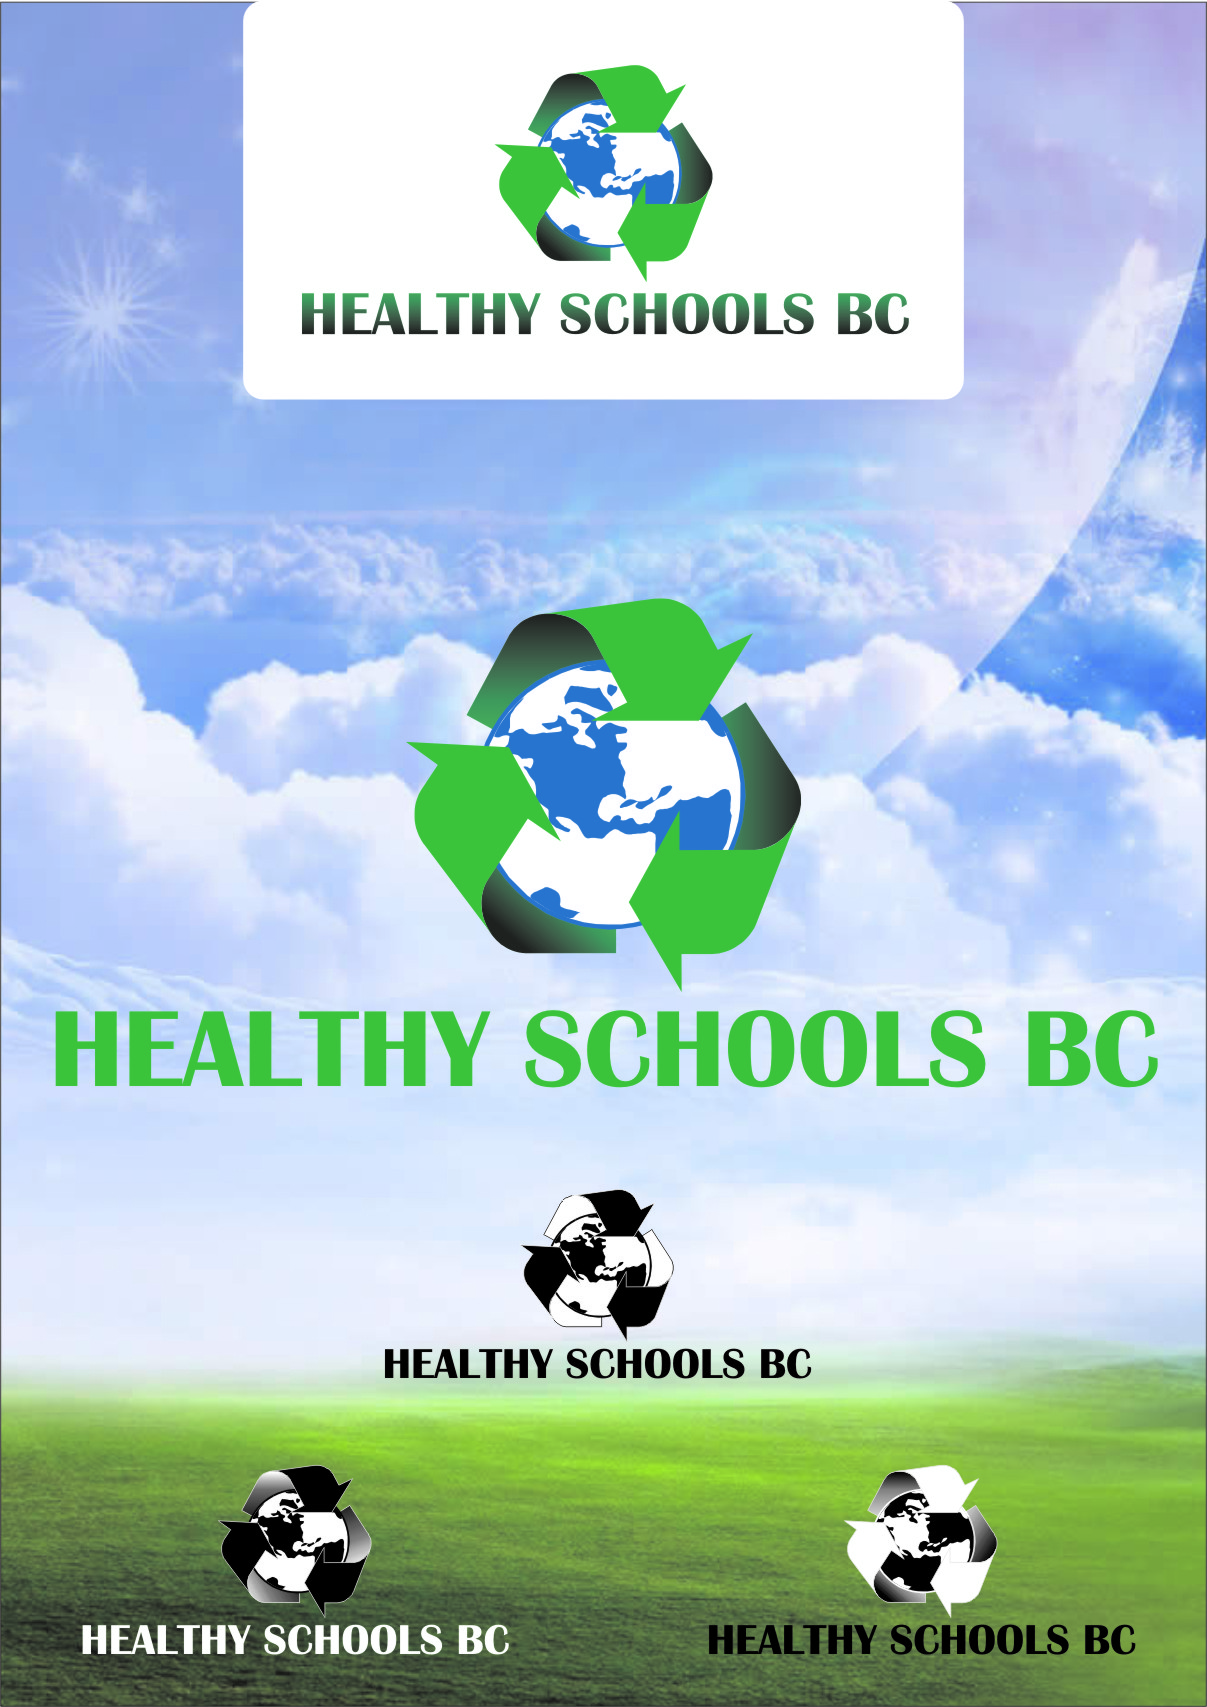 Logo Design by Ngepet_art - Entry No. 237 in the Logo Design Contest SImple, Creative and Clean Logo Design for Healthy Schools British Columbia, Canada.